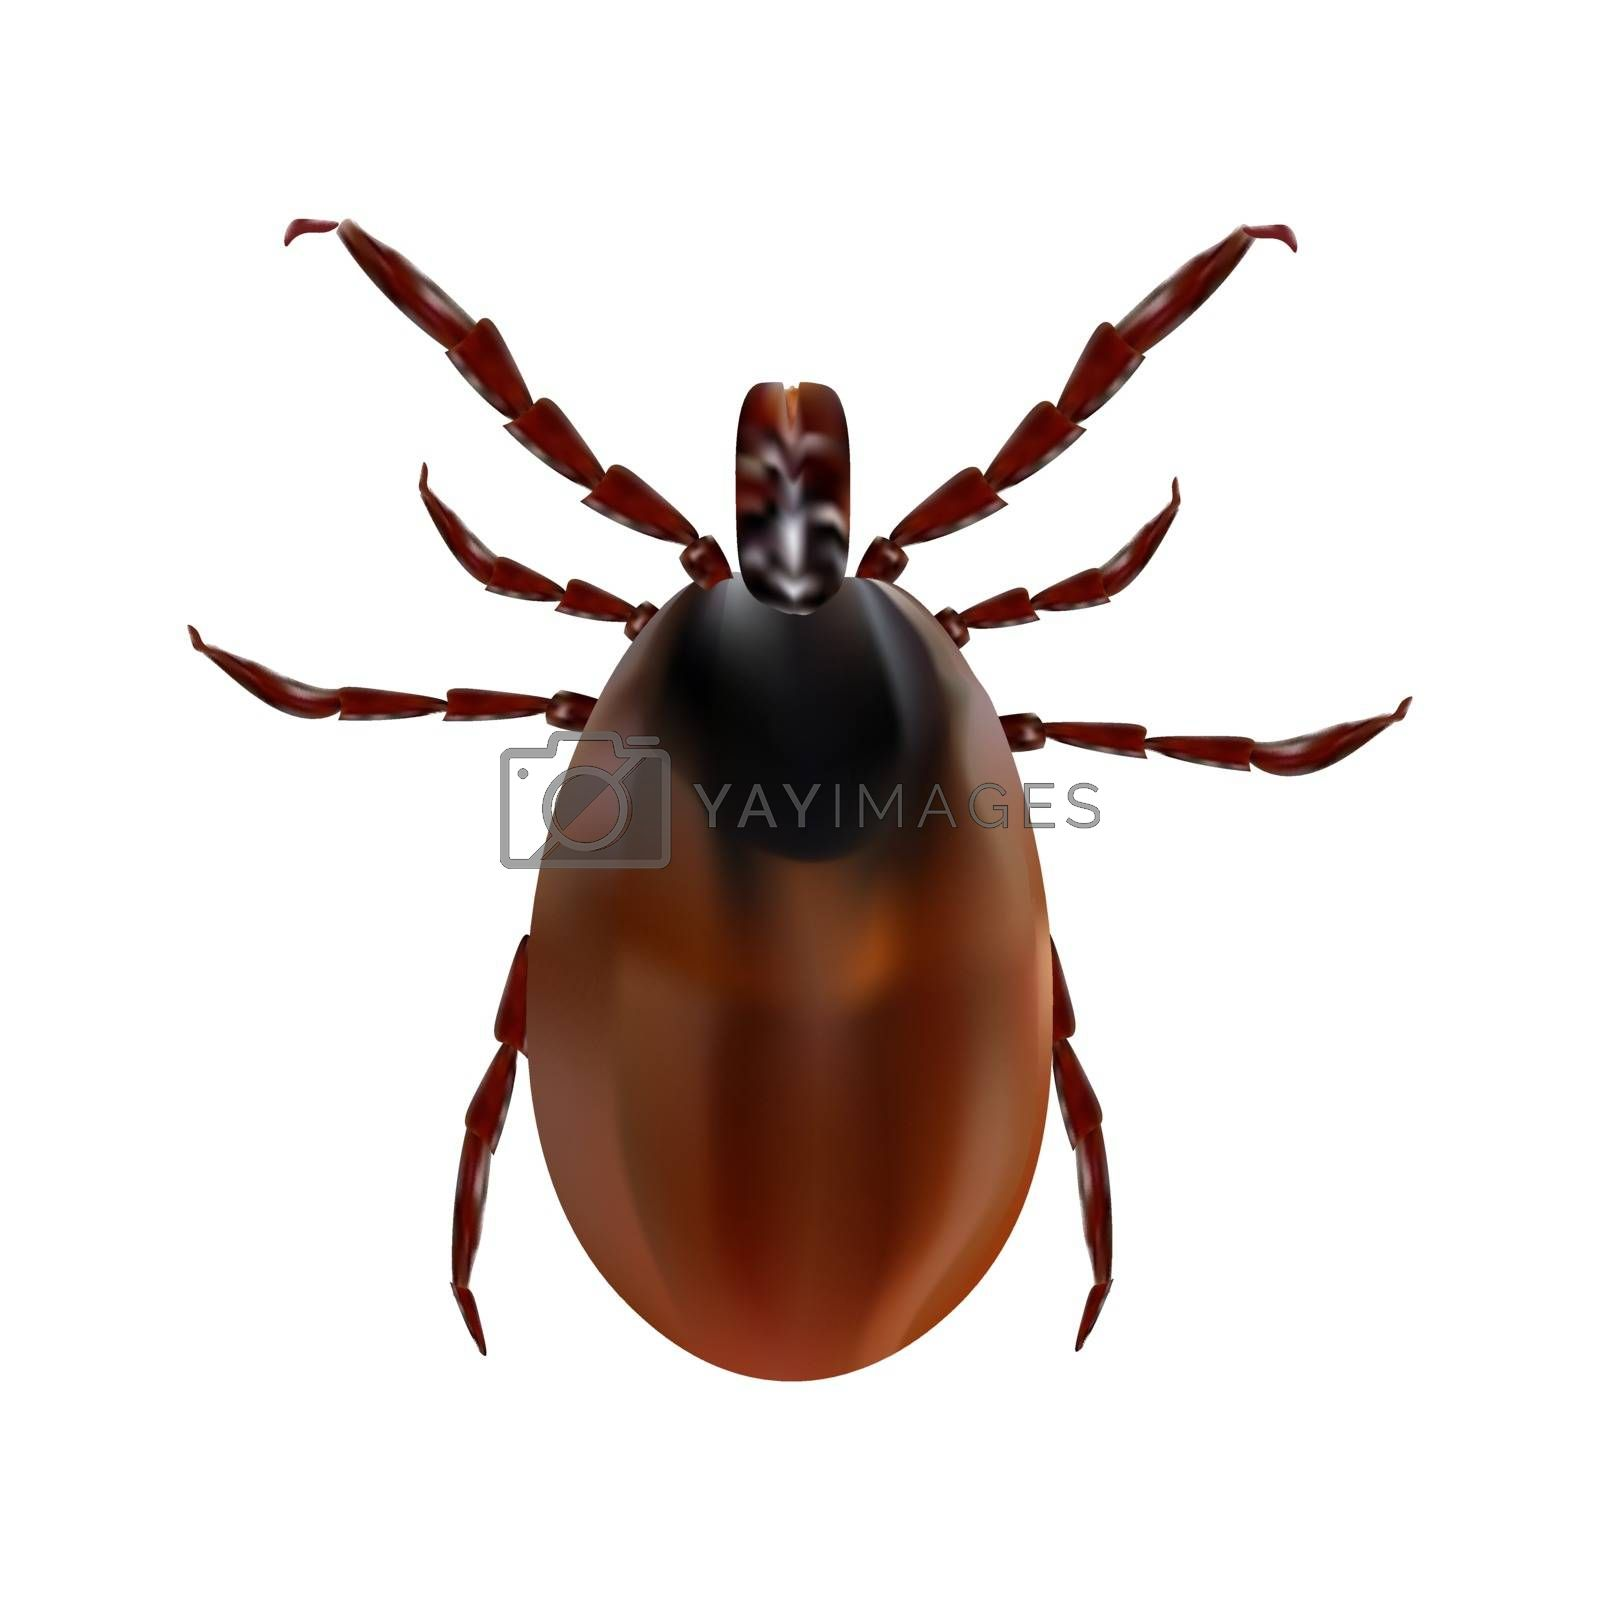 Harvest bug on a white background. Vector illustration